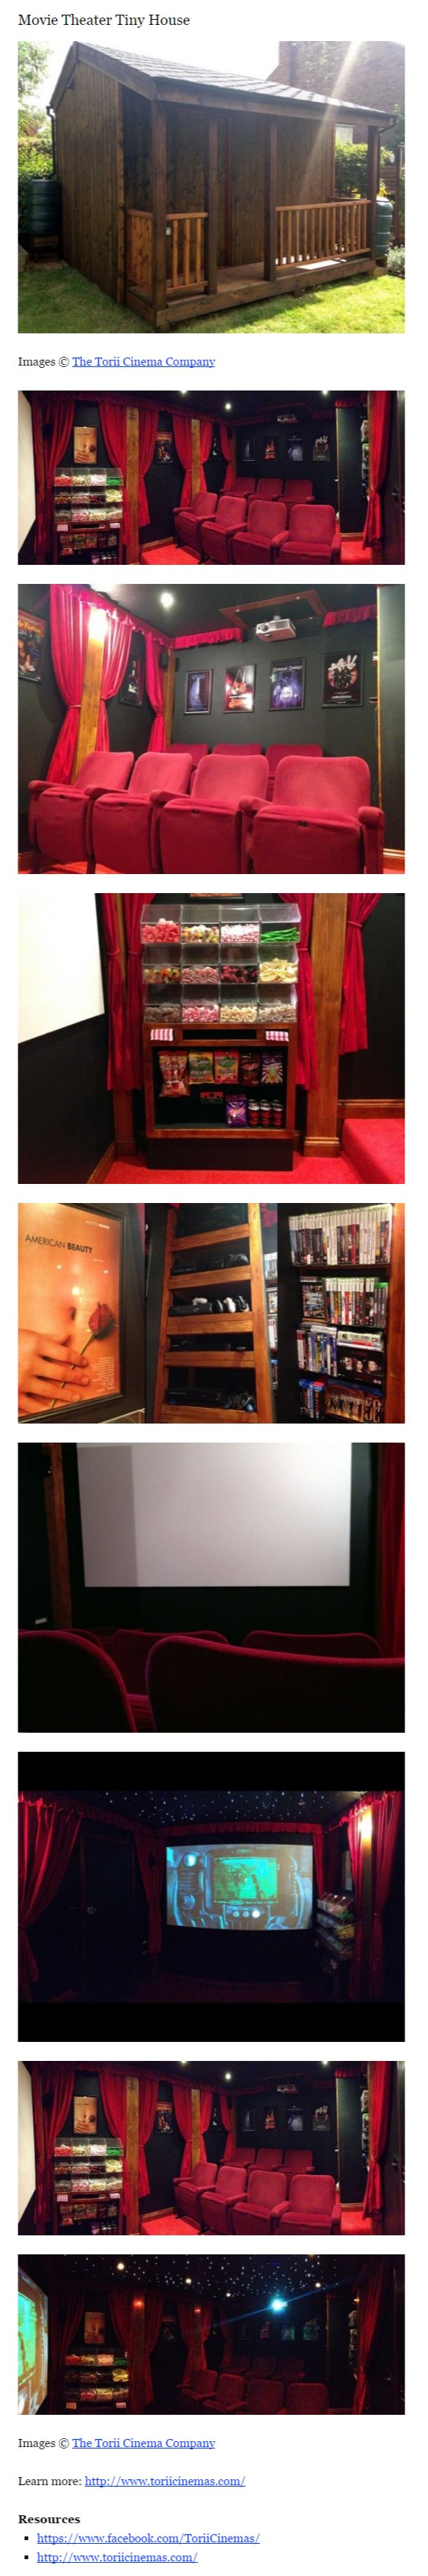 Movie Theater Tiny House on OCTOBER 31, 2015 Read more at http://tinyhousetalk.com/movie-theater-tiny-house/#4TVIAw2sLpeEC7Tm.99